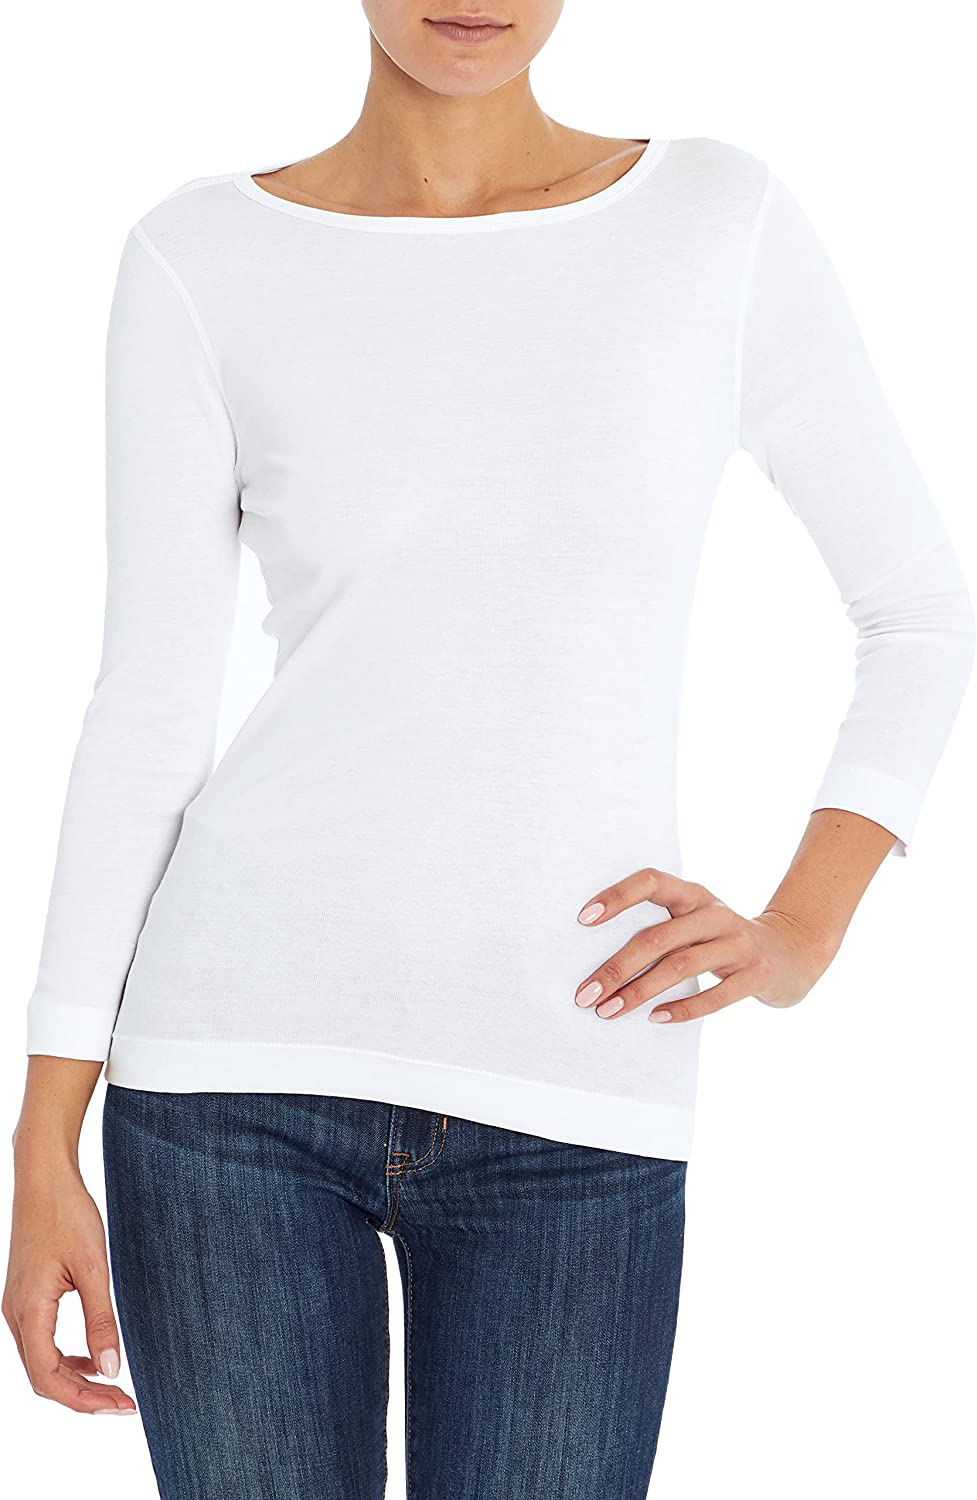 Three Special Campaign Dots Women's Essential Max 40% OFF Heritage Sleeve 4 3 Tee British